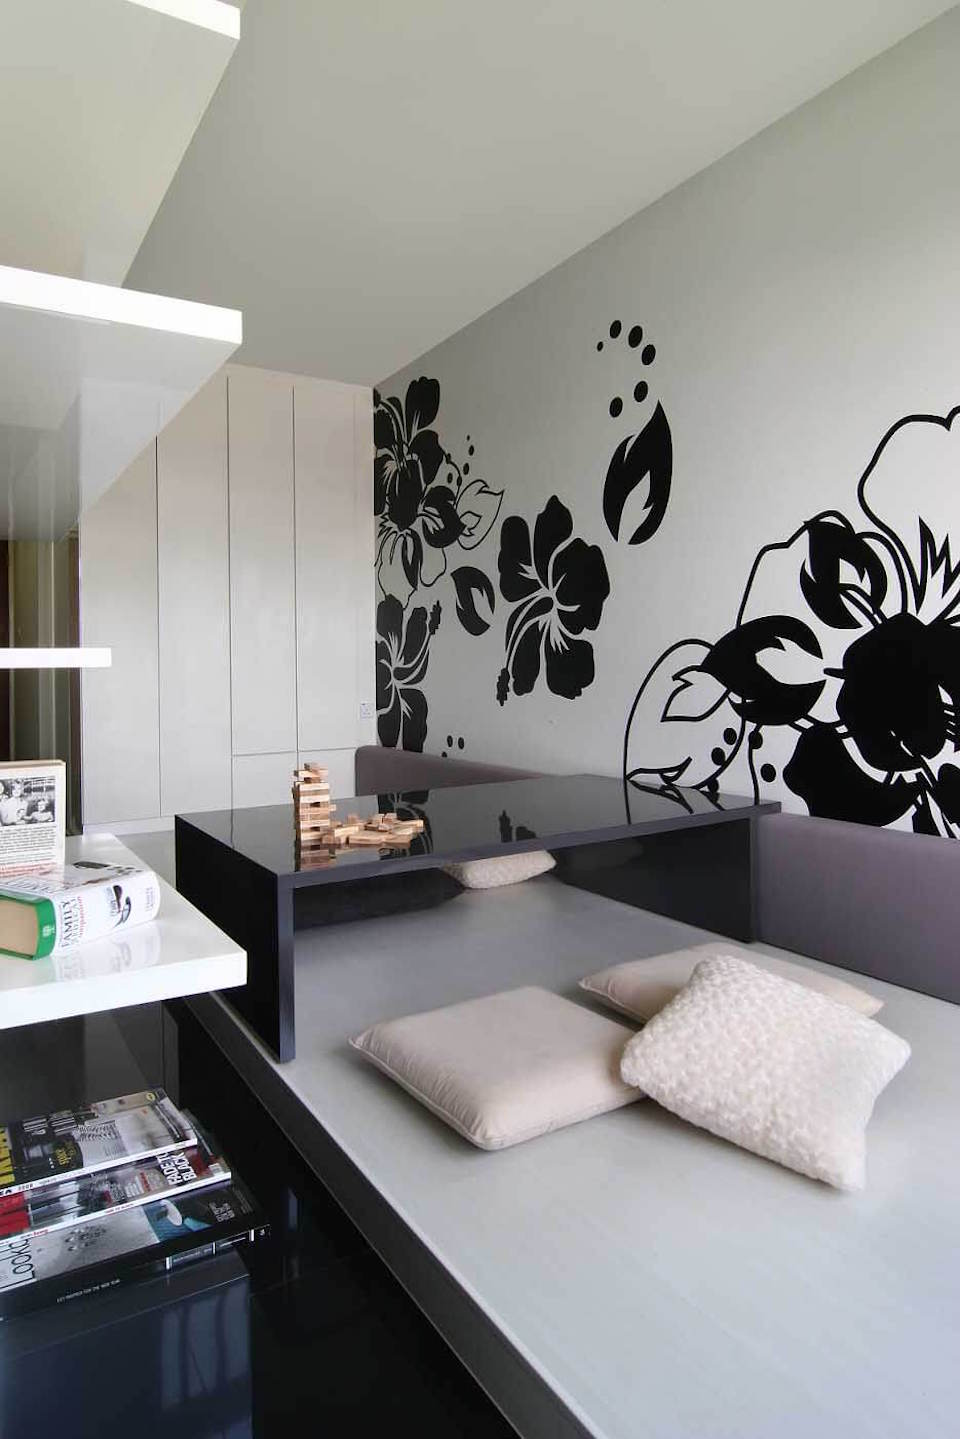 Singapore Hdb Room With Study Table: Interior Design For A HDB Flat In Tanglin Halt By Home